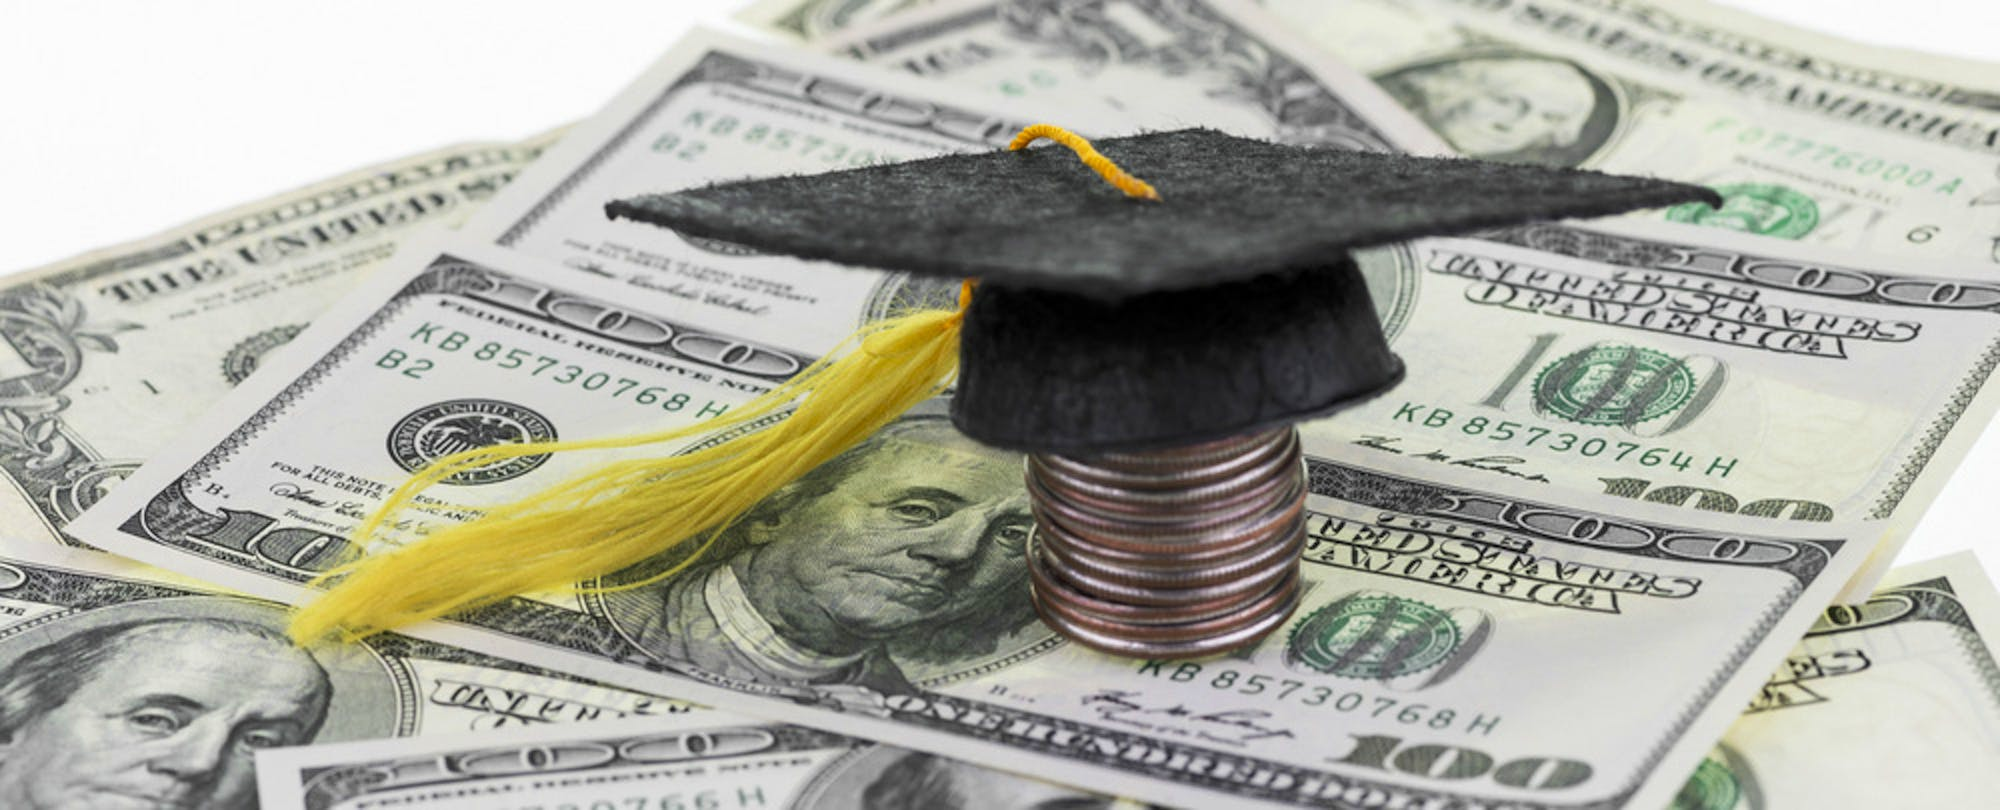 Why Aren't Today's Billionaires Investing in Higher Education Innovation?